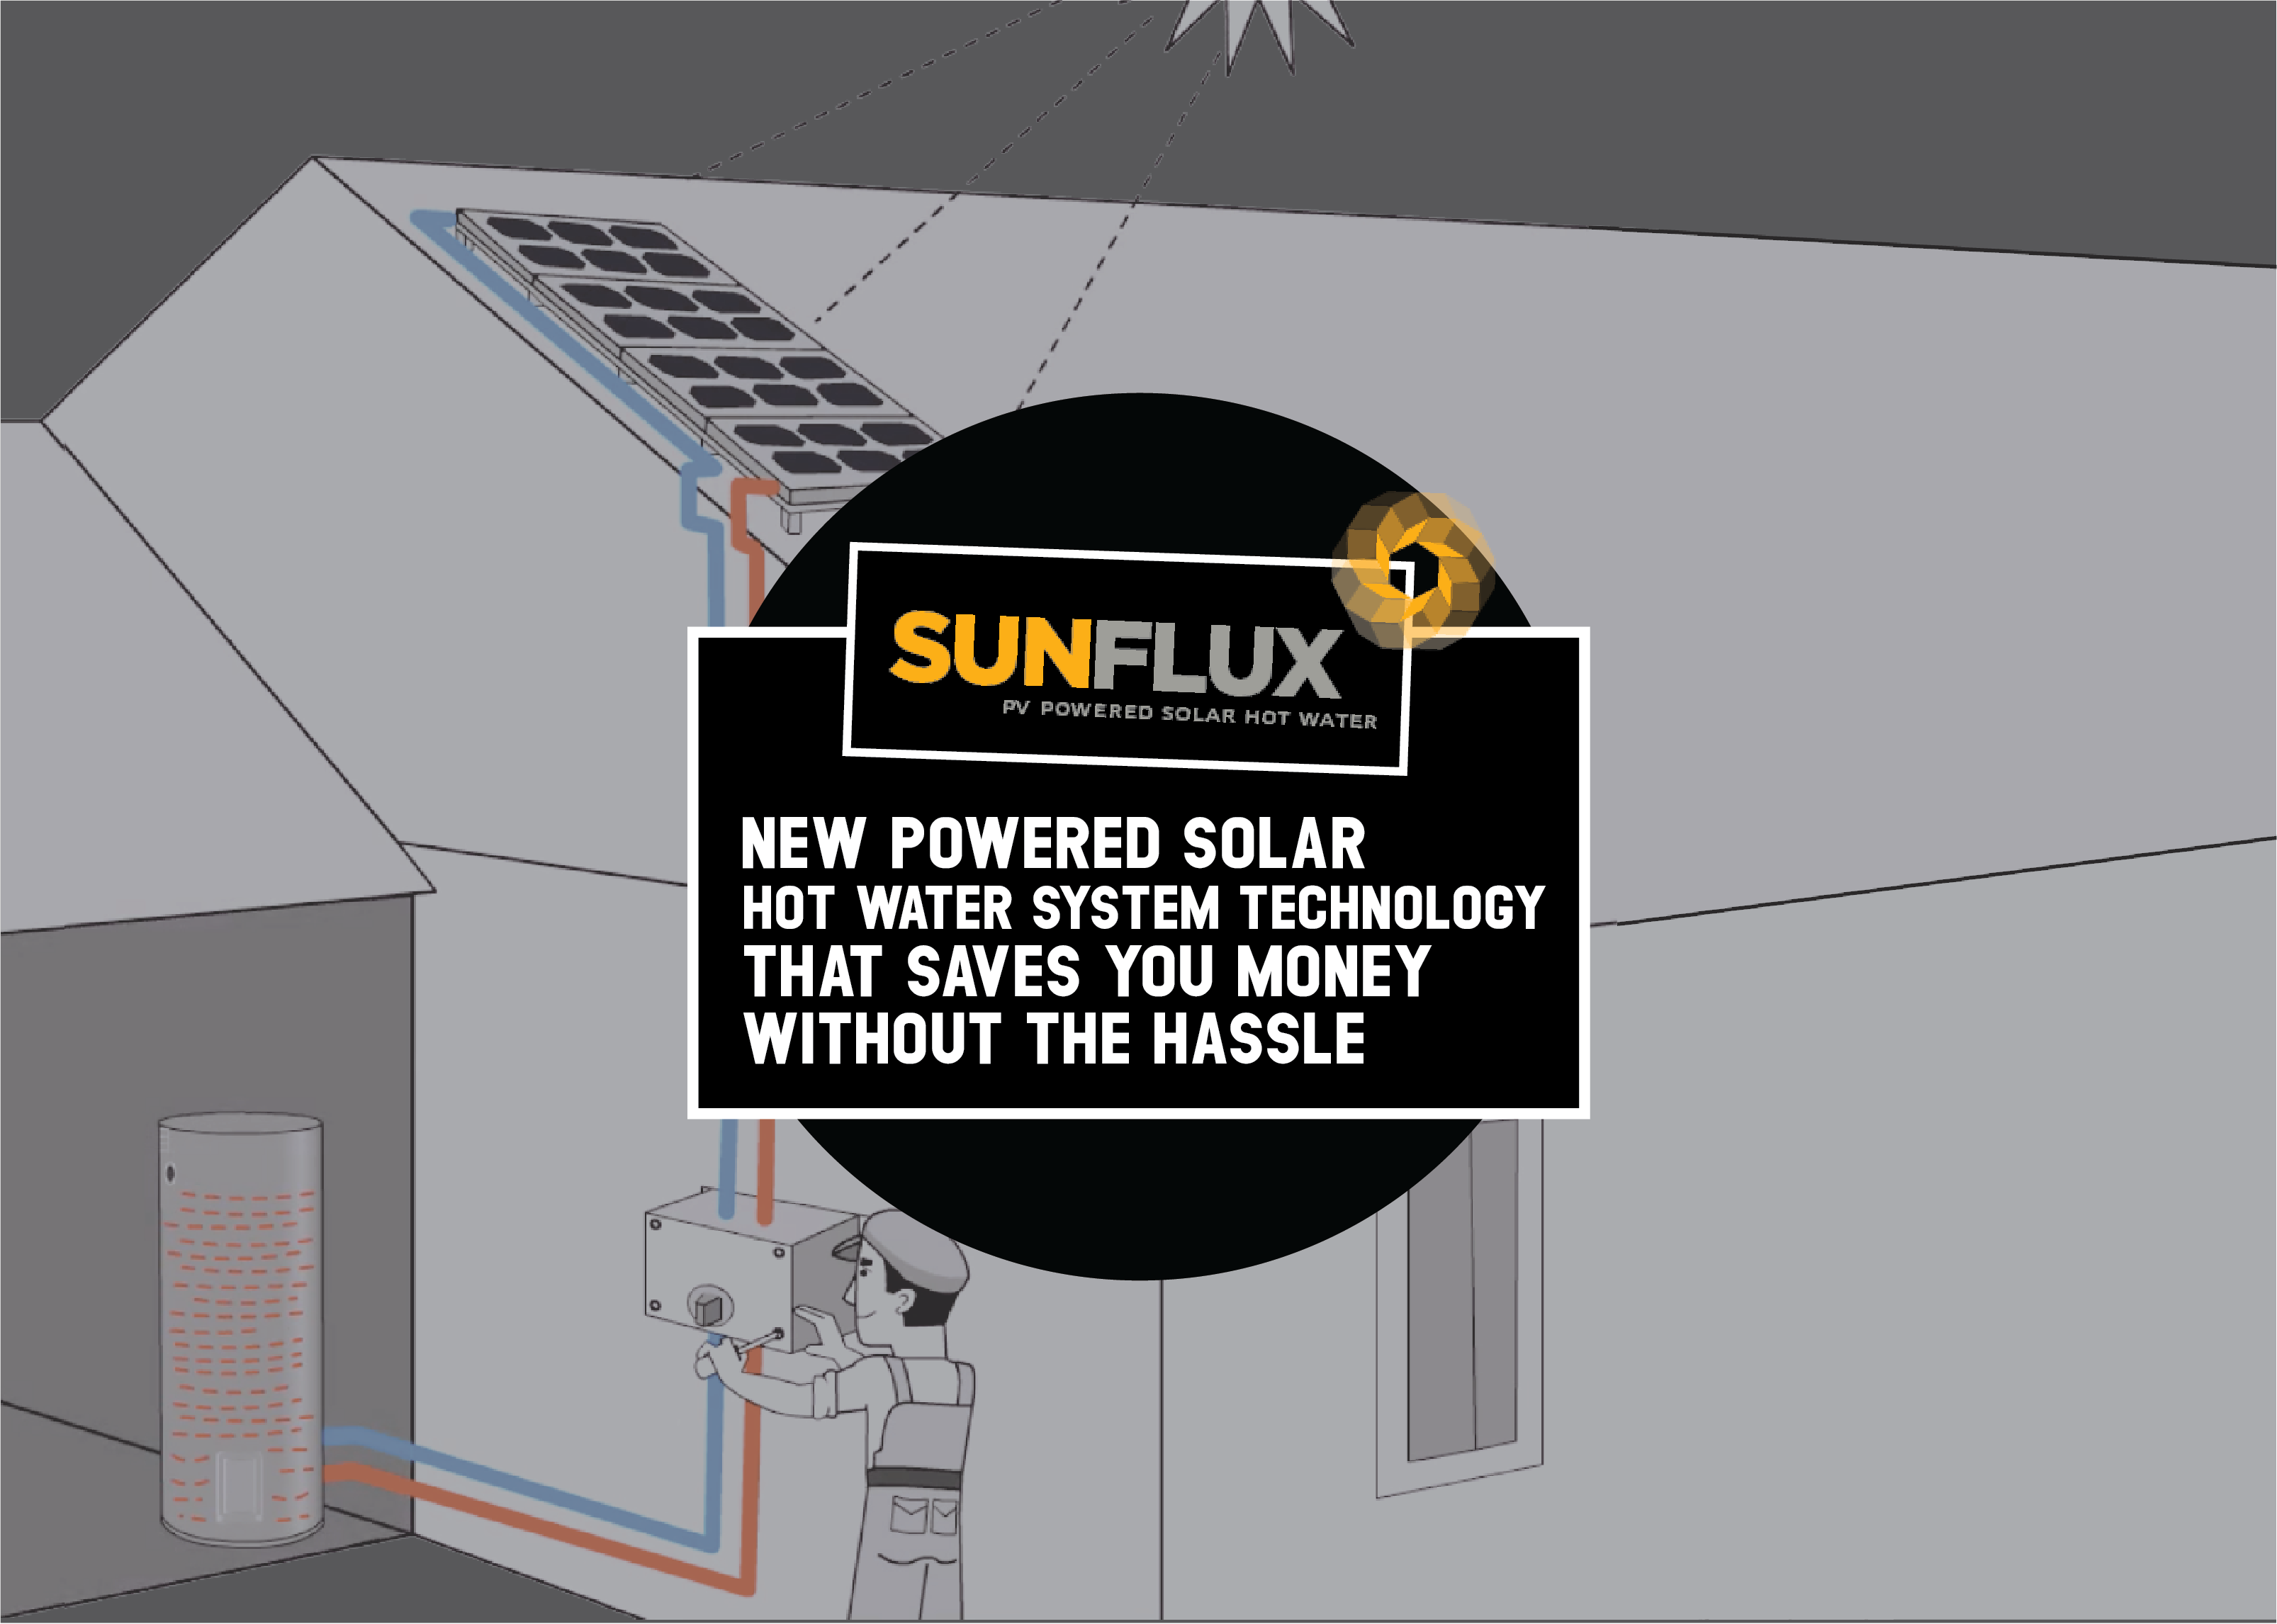 Sunflux Hot Water Systems